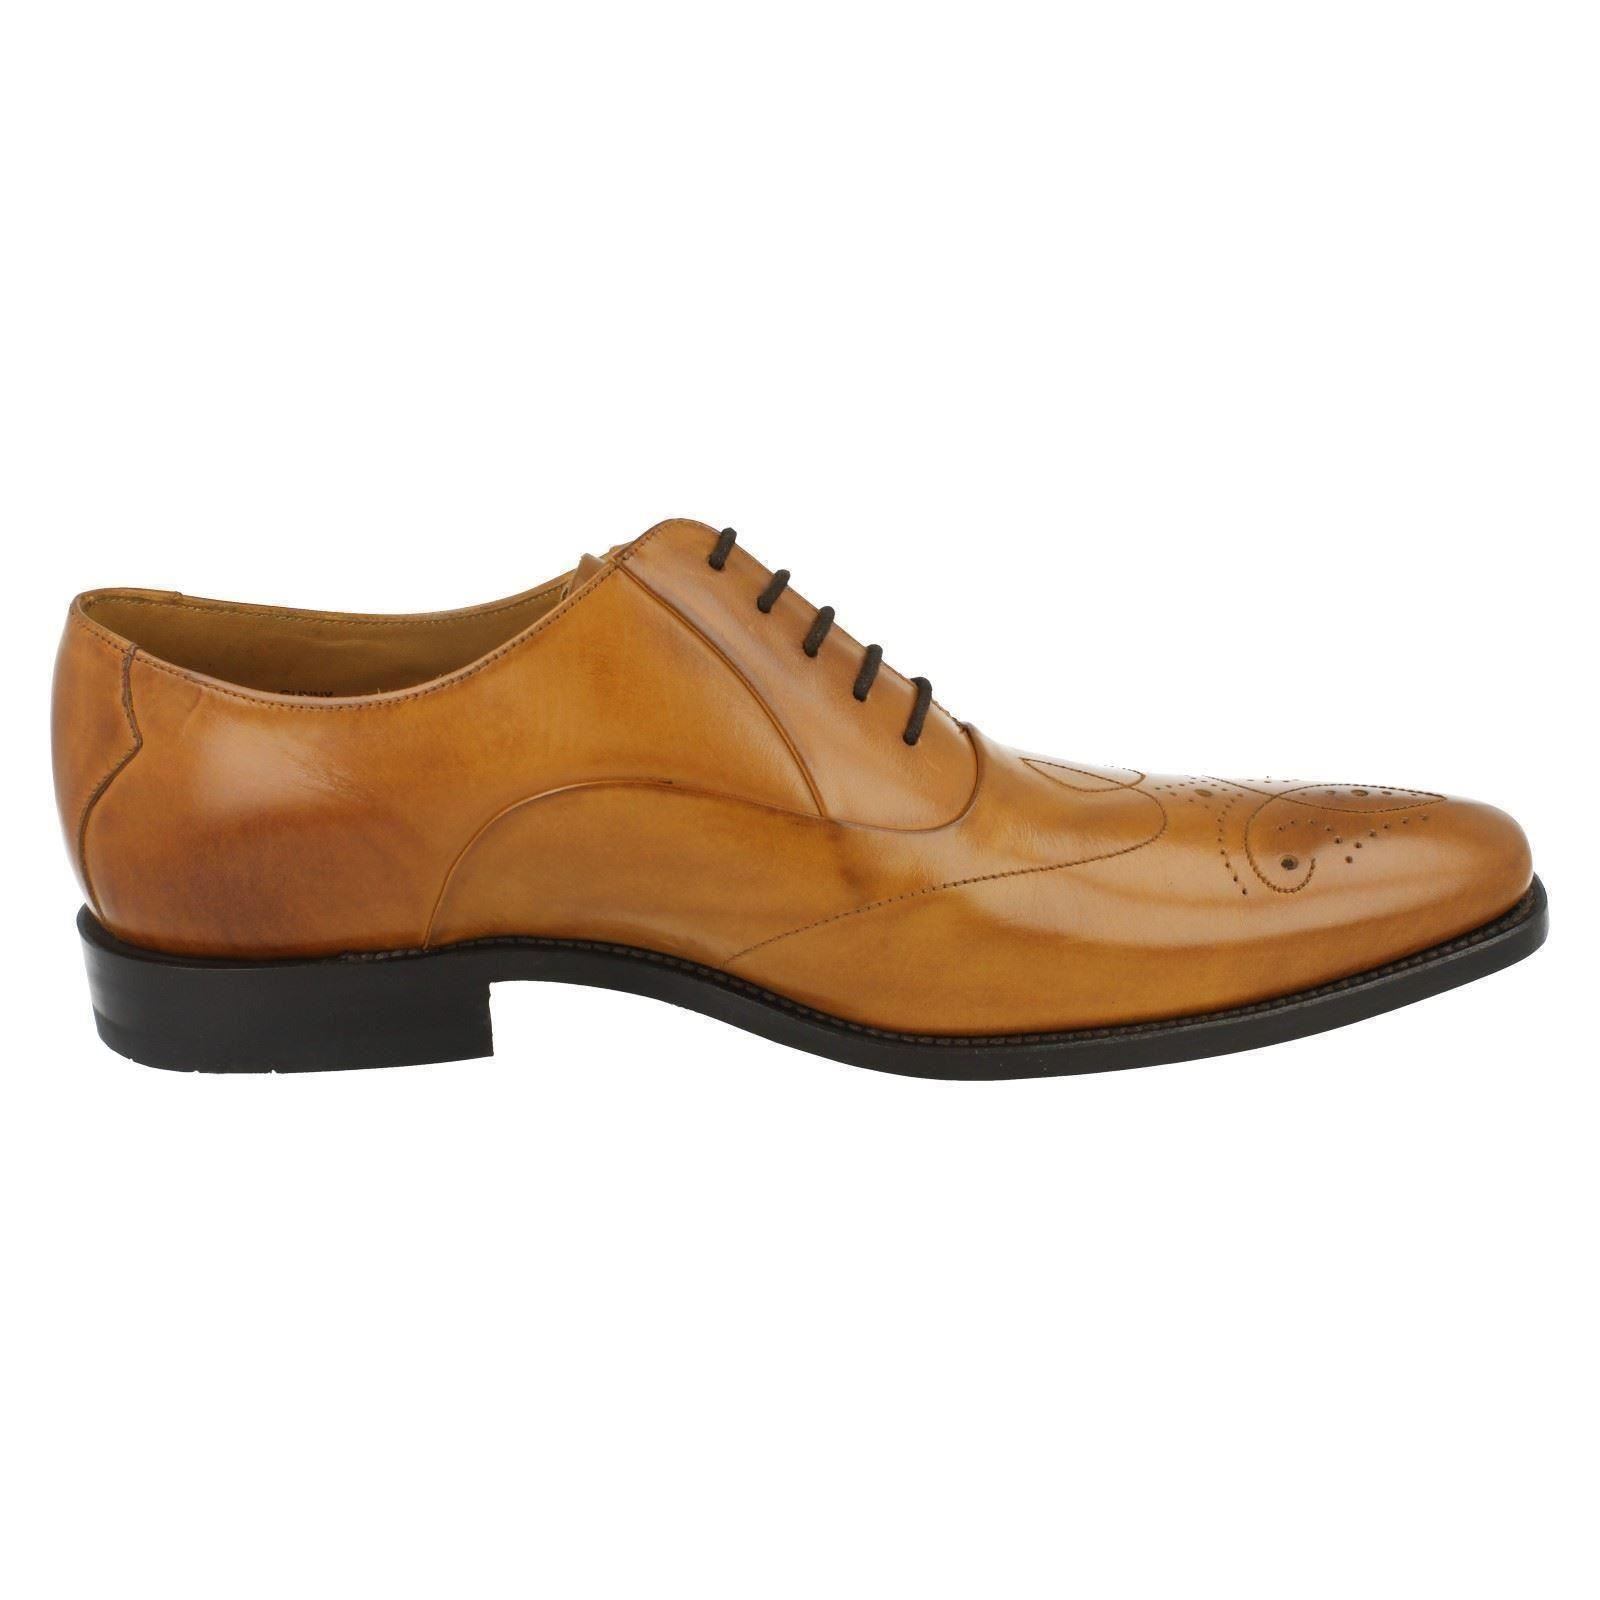 Mens Fitting Loake Formal Schuhes F Fitting Mens - Gunny 1259ab